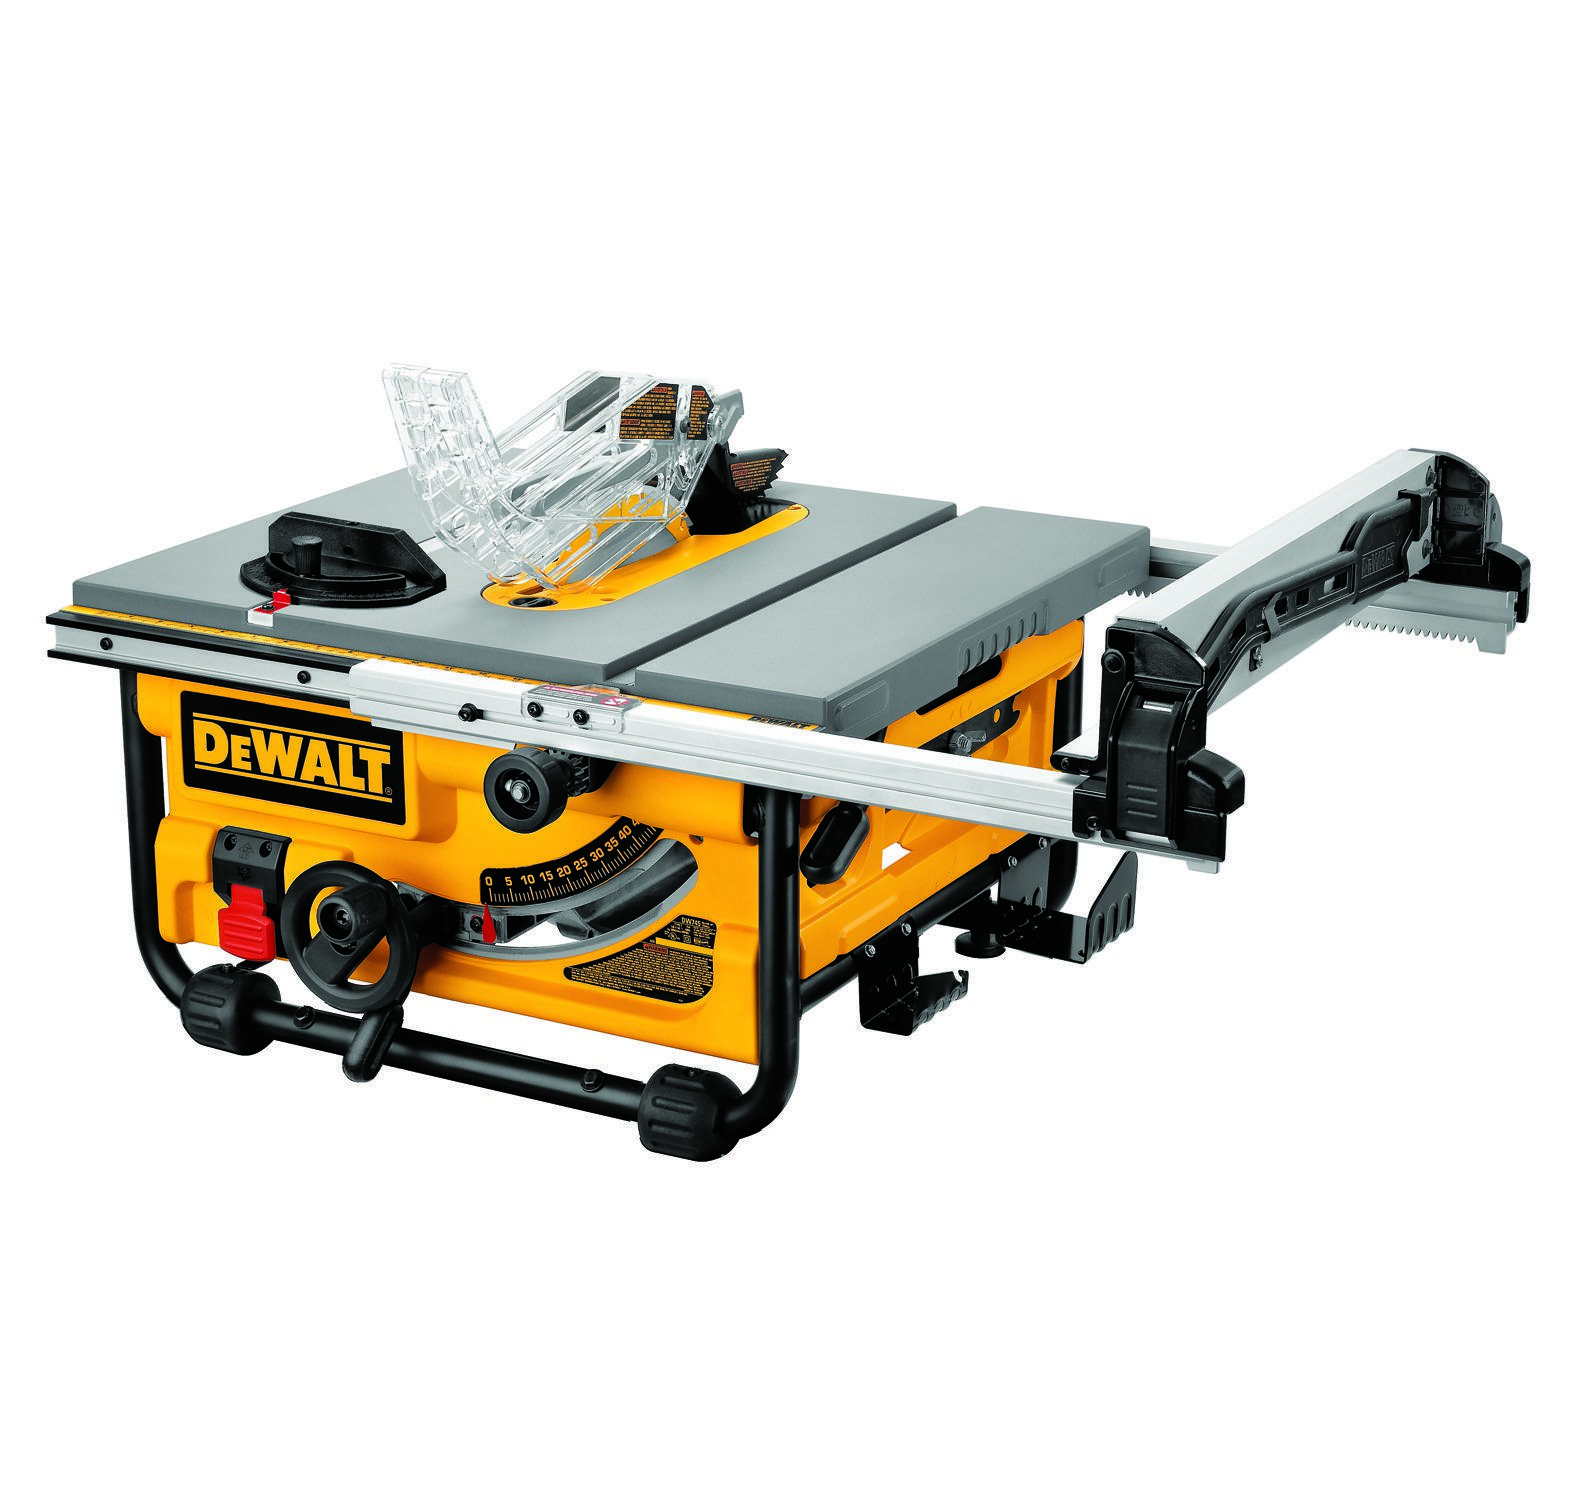 Murdoch S Dewalt 10 Compact Job Site Table Saw With Site Pro Modular Guarding System Dw745 Compa In 2020 Best Table Saw 10 Inch Table Saw Jobsite Table Saw